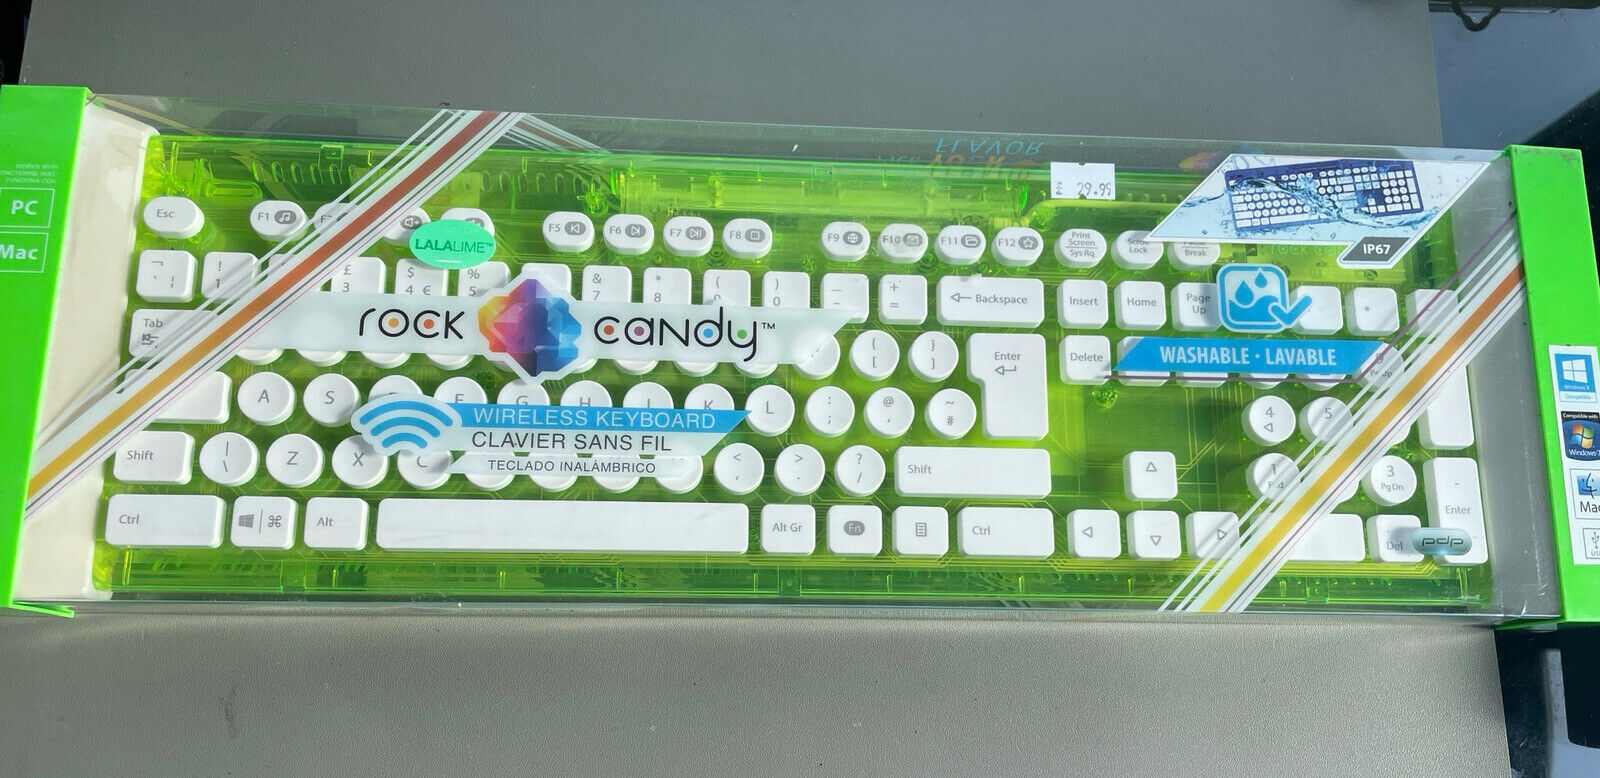 Brand new Lala Lime Rock Candy Washable, Wireless Keyboard